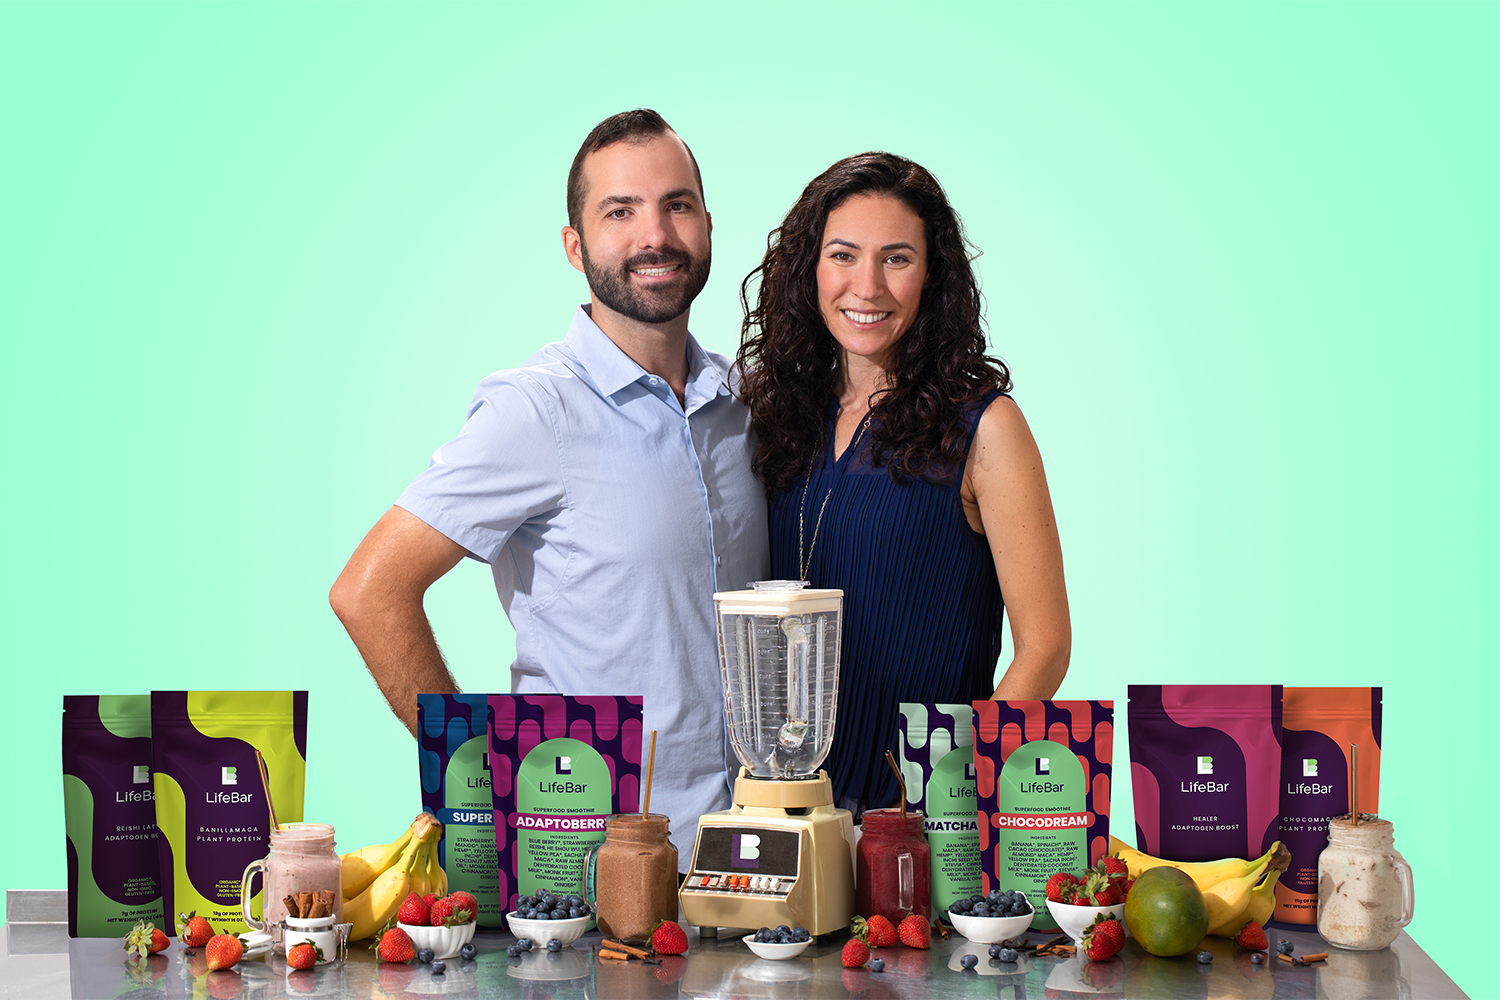 Meet a Maker: Chase and Jamie Barmore, LIFEbar